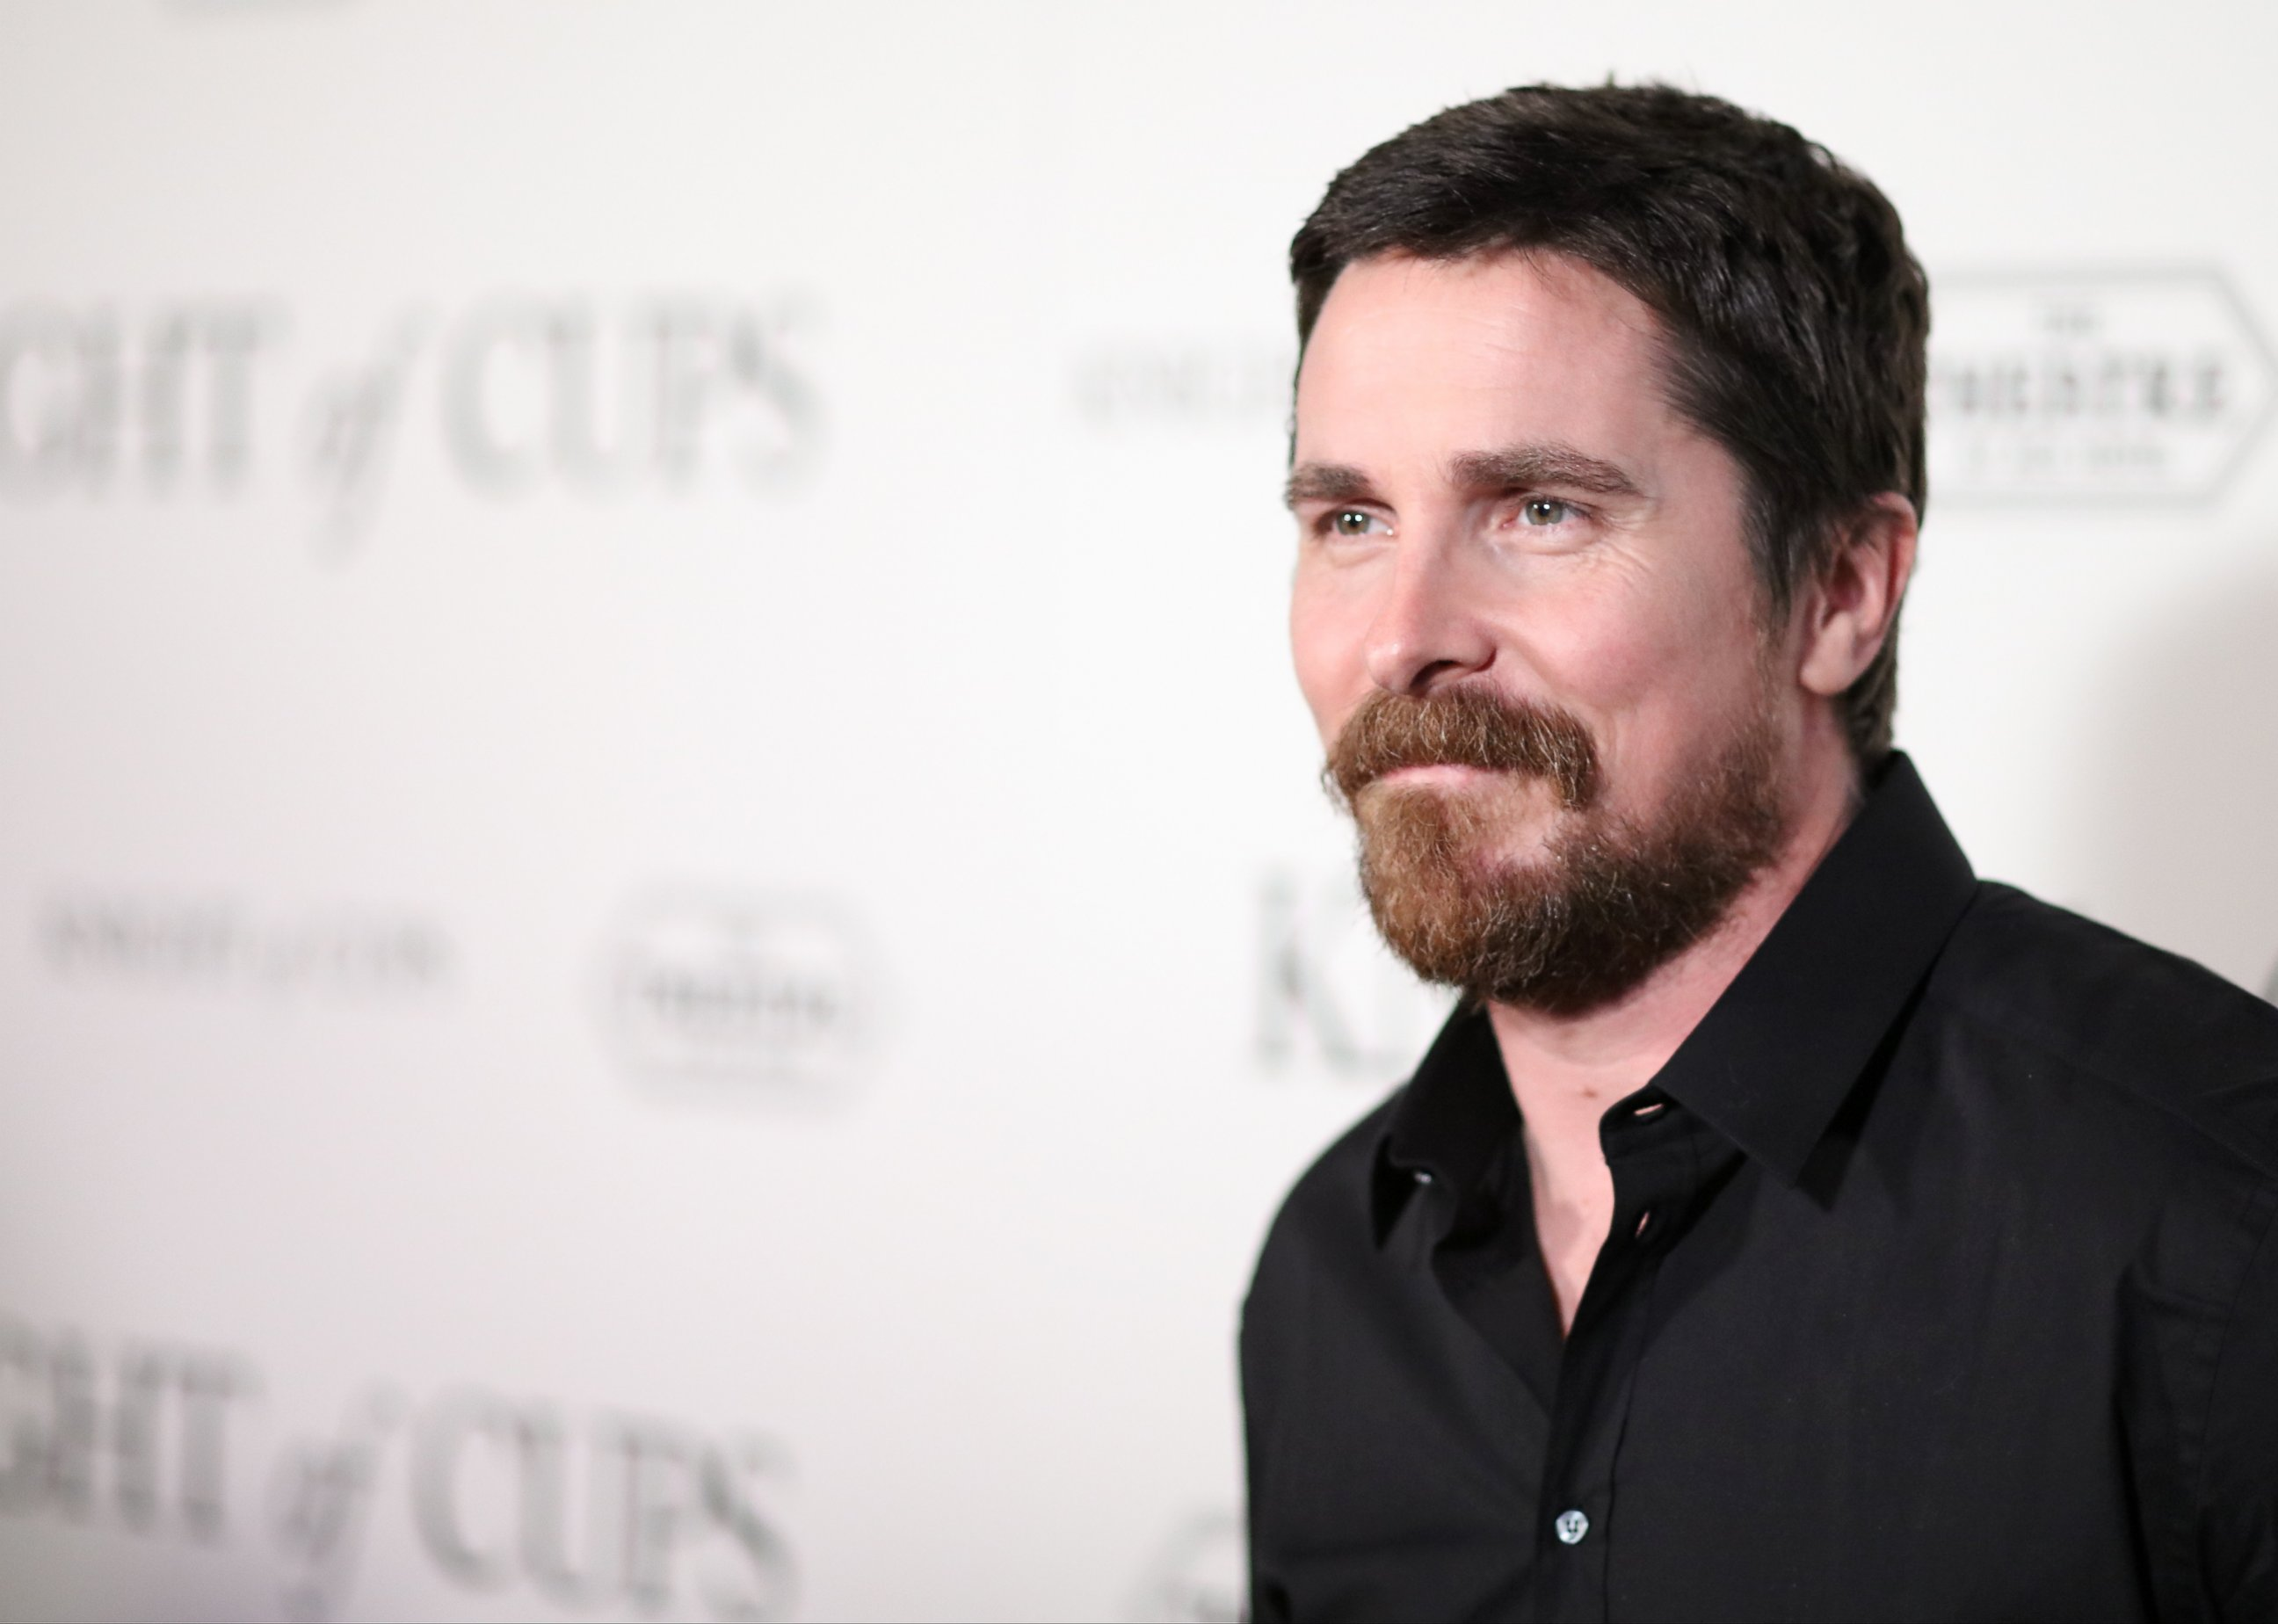 Christian Bale Videos at ABC News Video Archive at abcnews.com